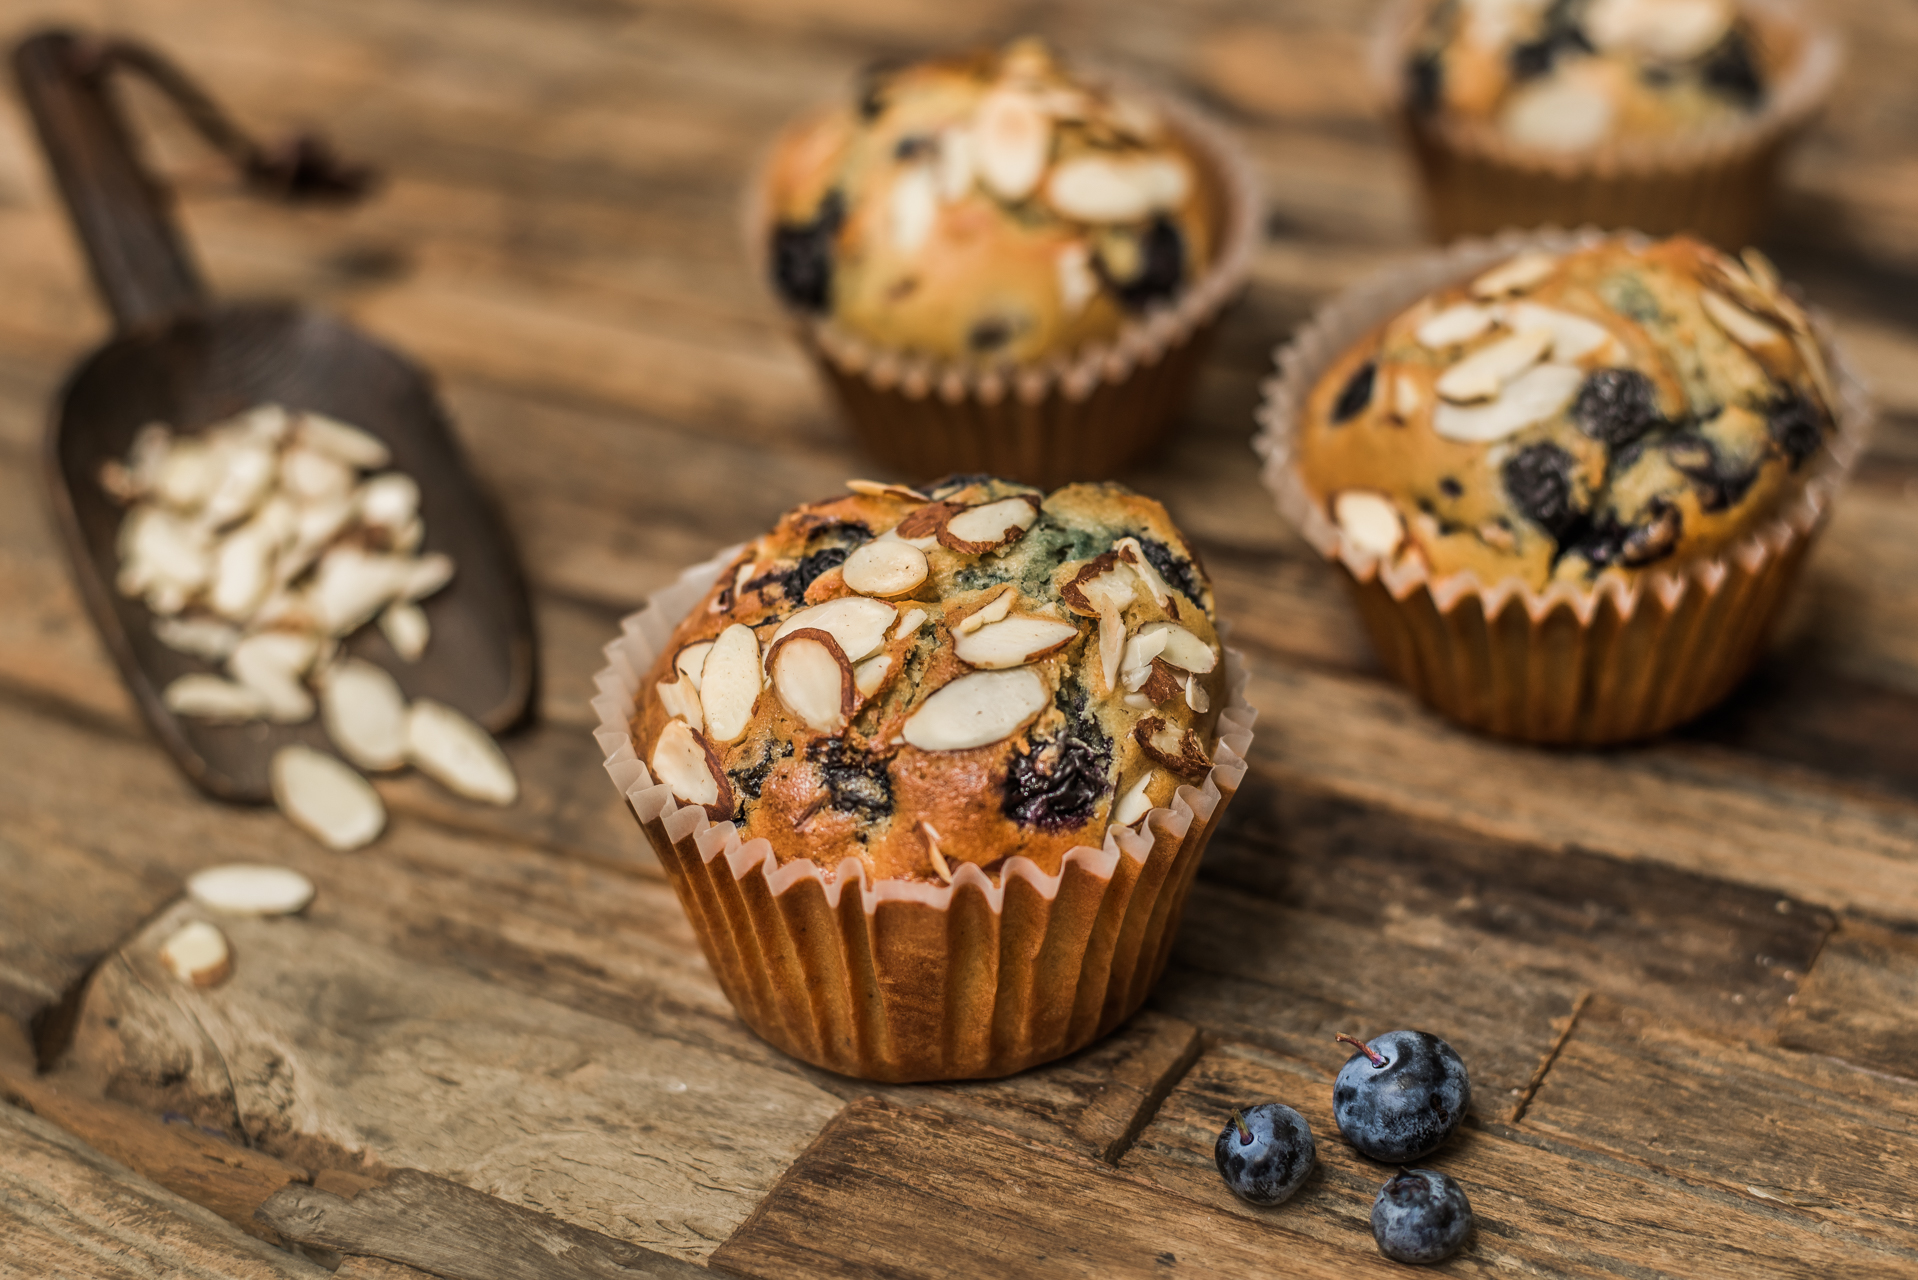 Copy of Gluten-free Blueberry Almond Muffin